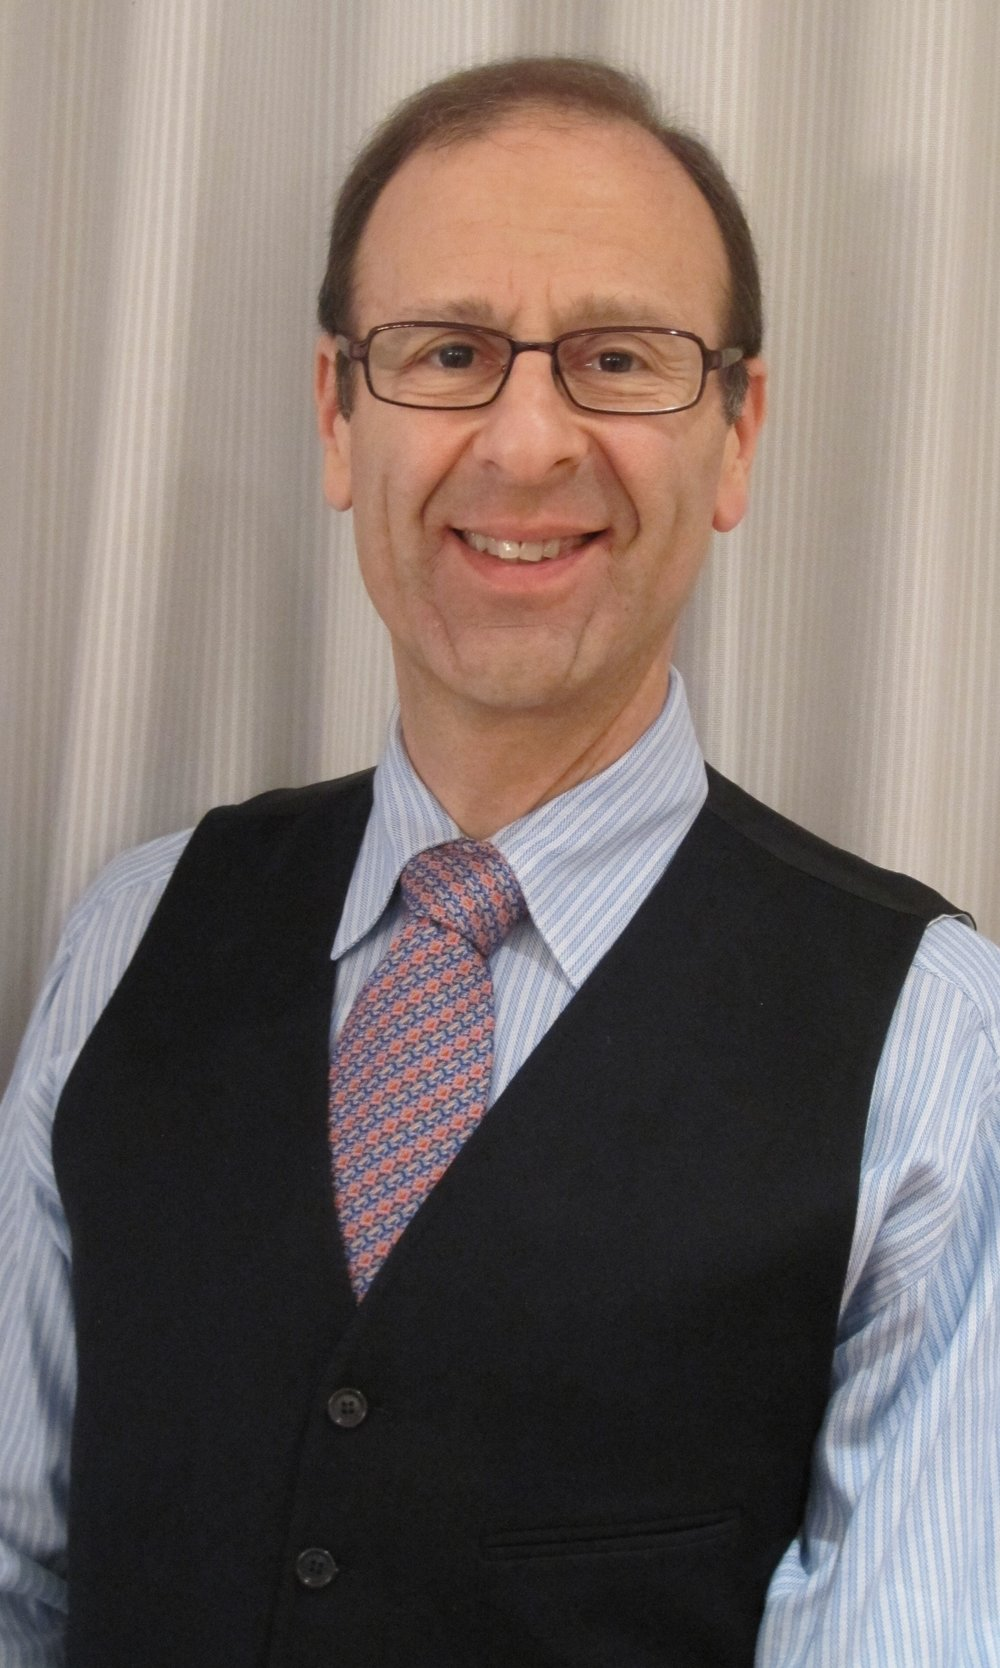 Joel Shalowitz, MD, MBA - Physician, Business Consultant, Teacher.